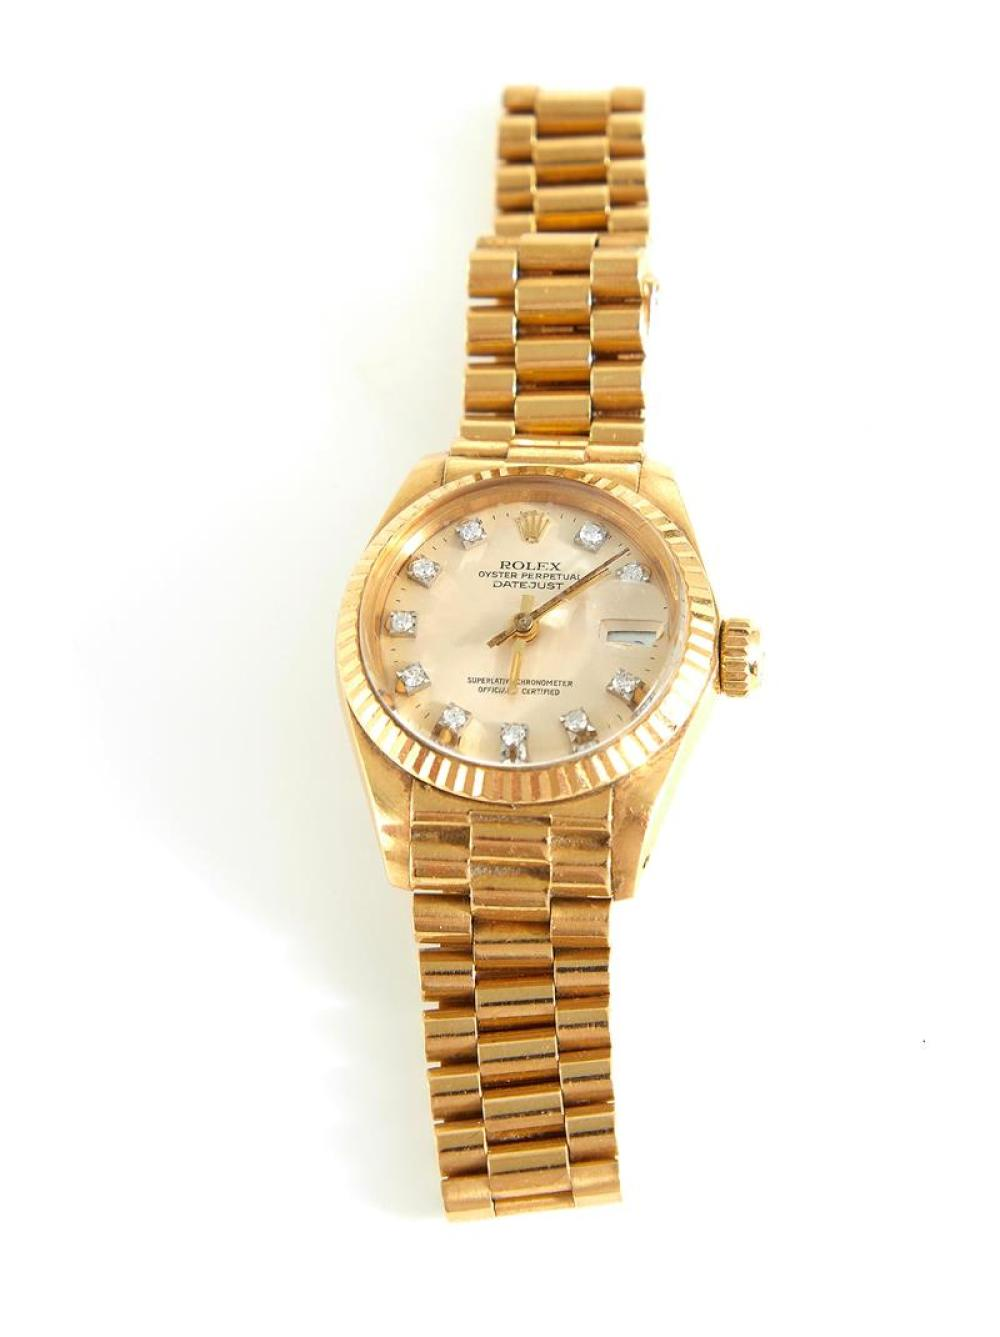 Vintage Rolex Oyster Datejust Presidential diamond and gold wristwatch